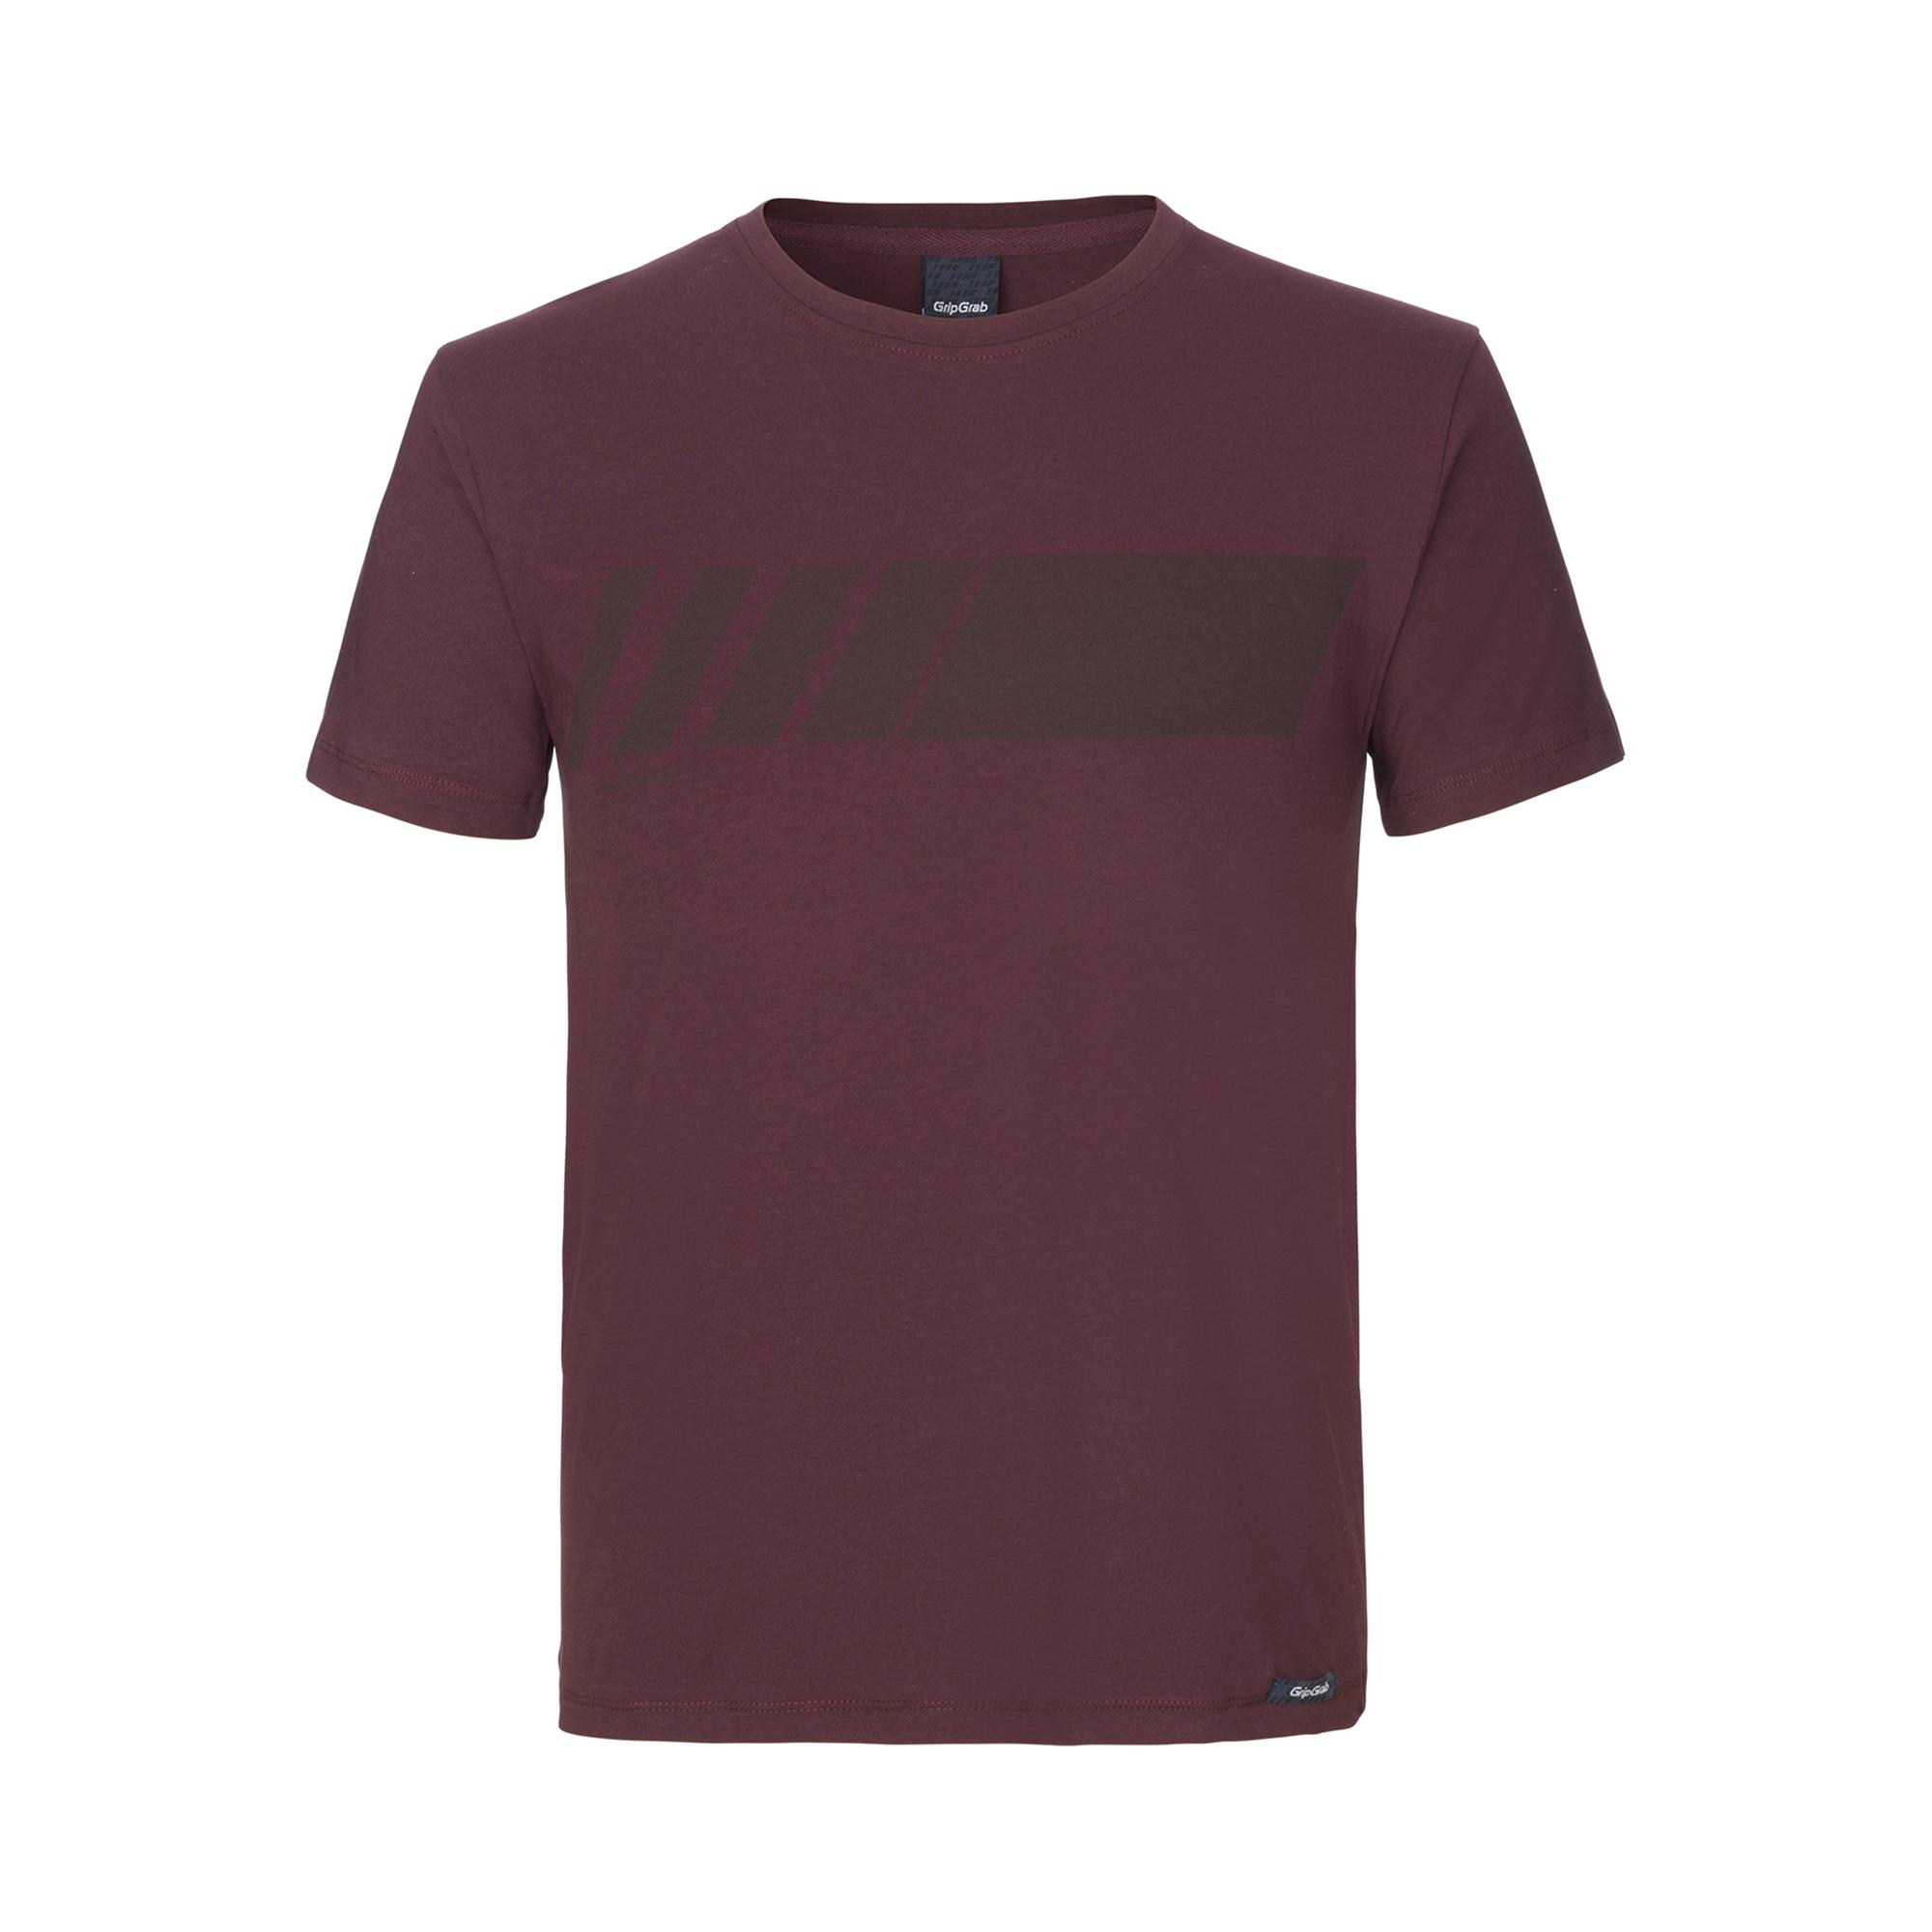 GripGrab Casual T-Shirt Unisex Rood - Racing Stripe Short Sleeve Organic Cotton T-Shirt Dark Red